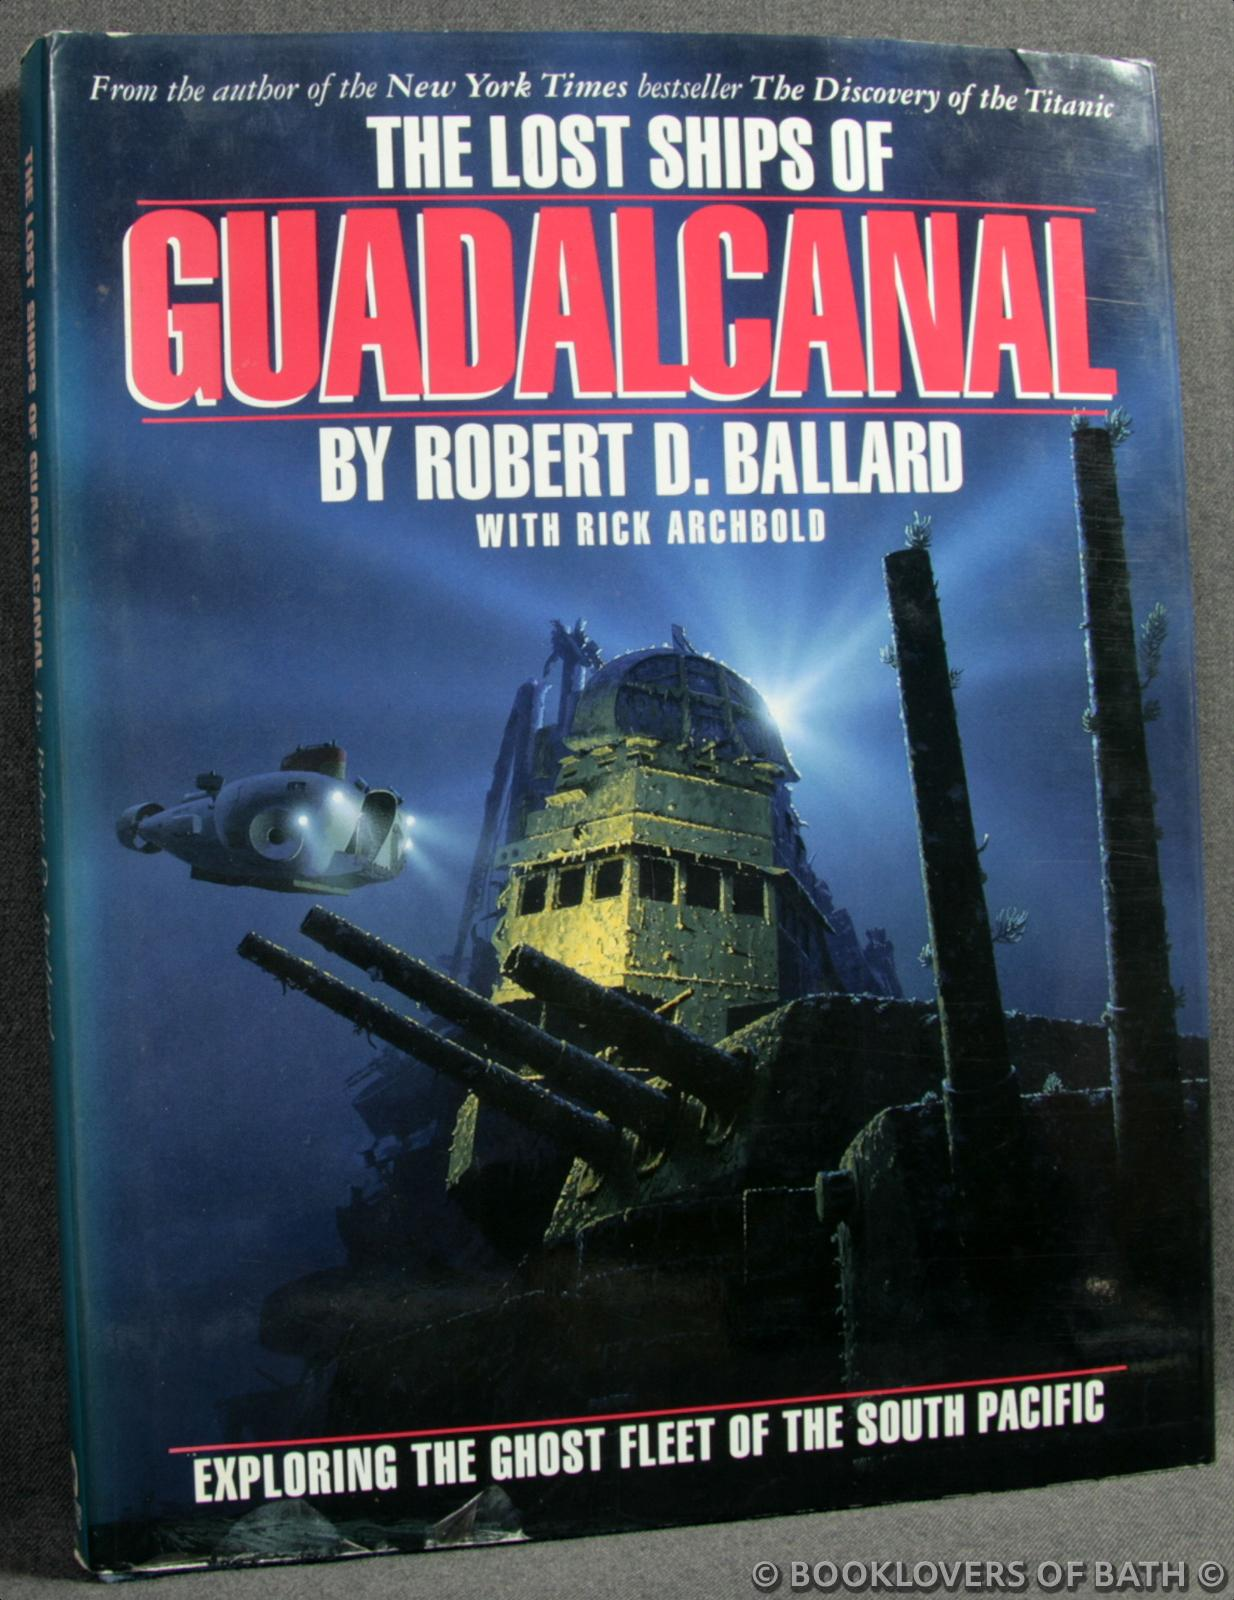 The Lost Ships of Guadalcanal: Exploring the Ghost Fleet of the South Pacific - Robert D. Ballard with Rick Archbold